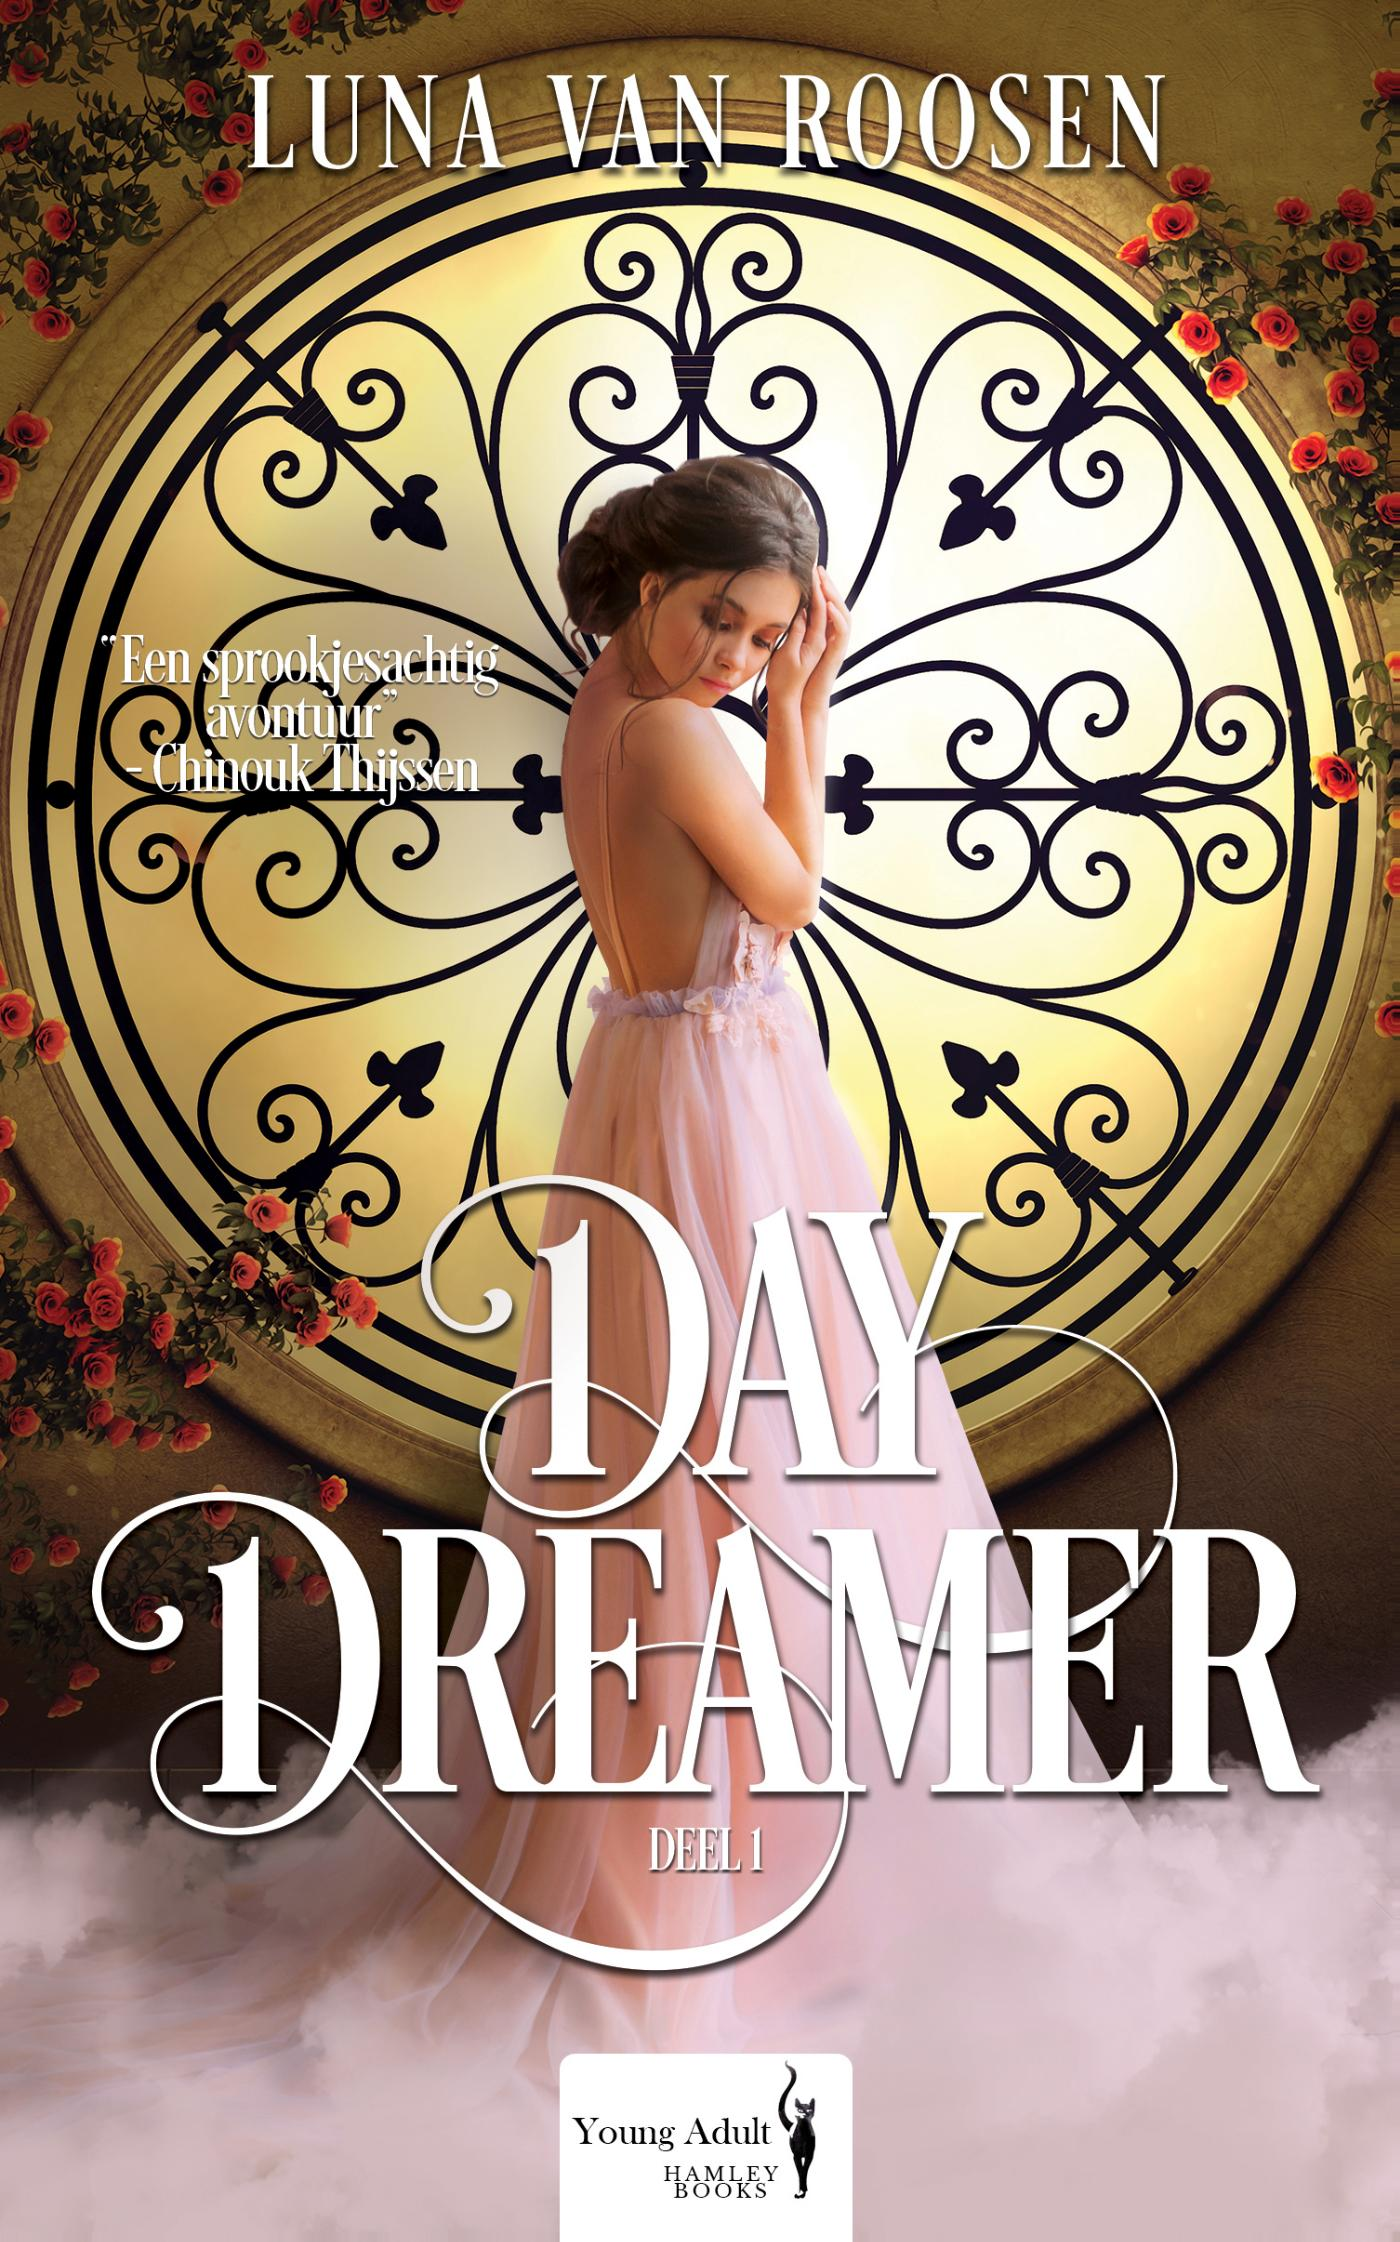 Cover Day dreamer